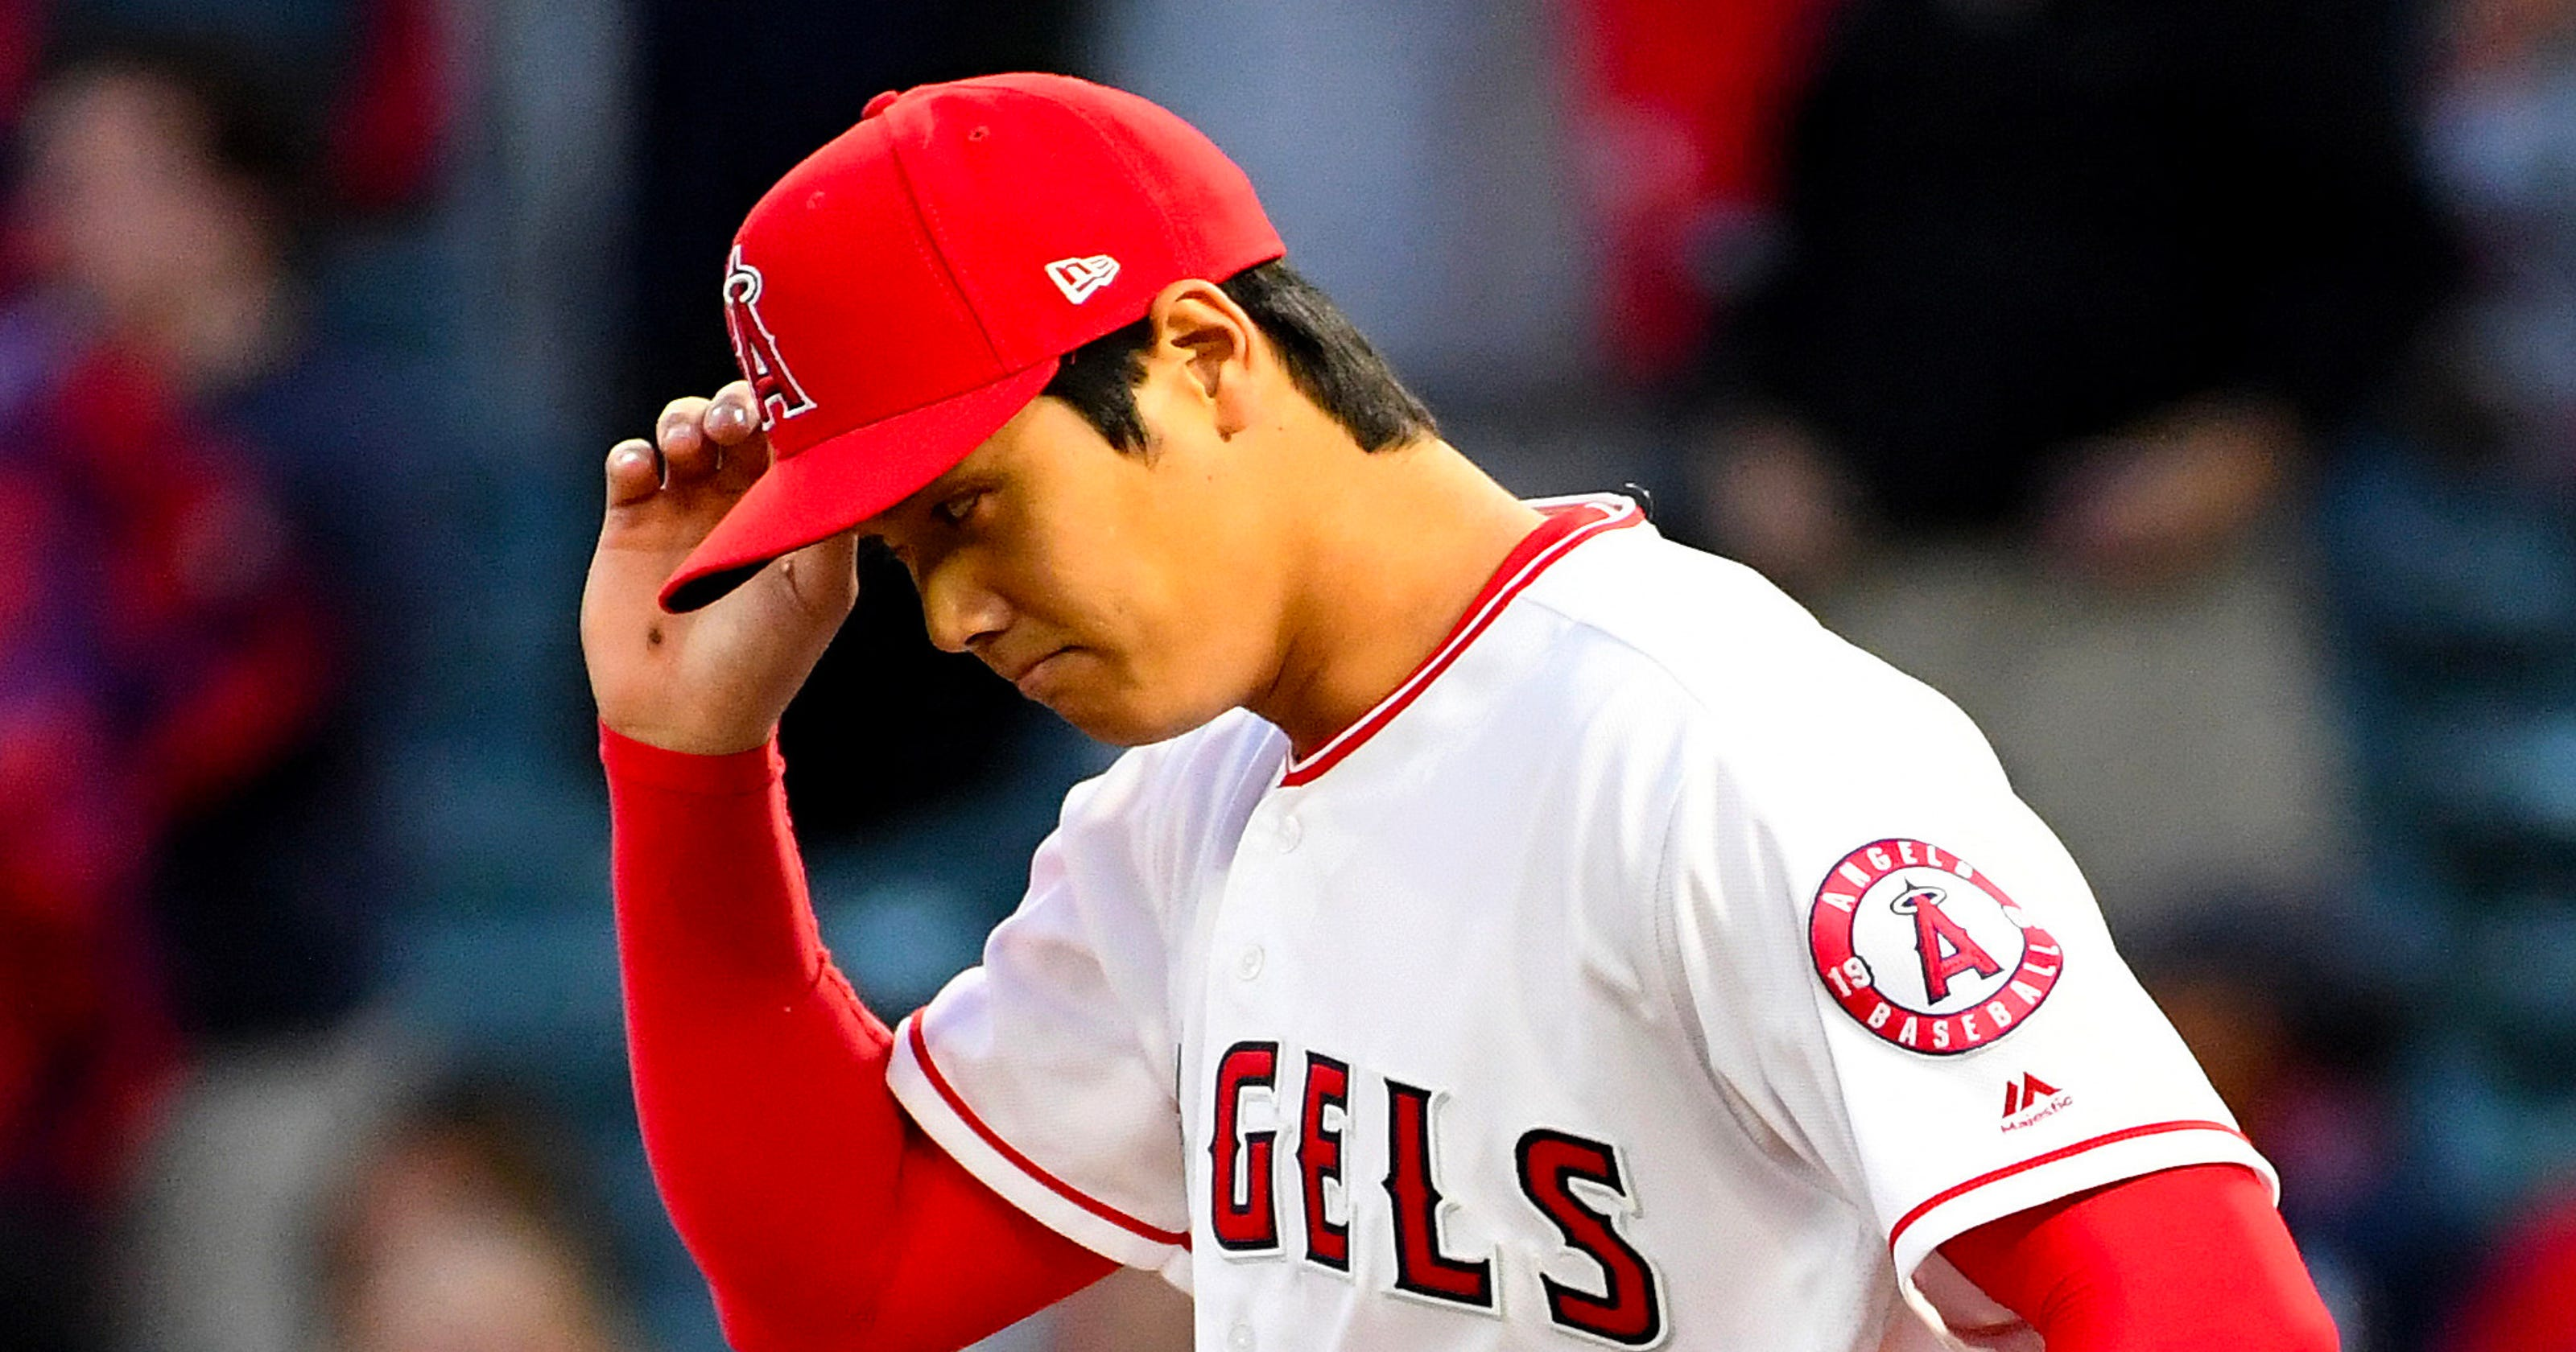 4b228a46c57 Angels  Shohei Ohtani removed from game against Red Sox with blister after  two innings